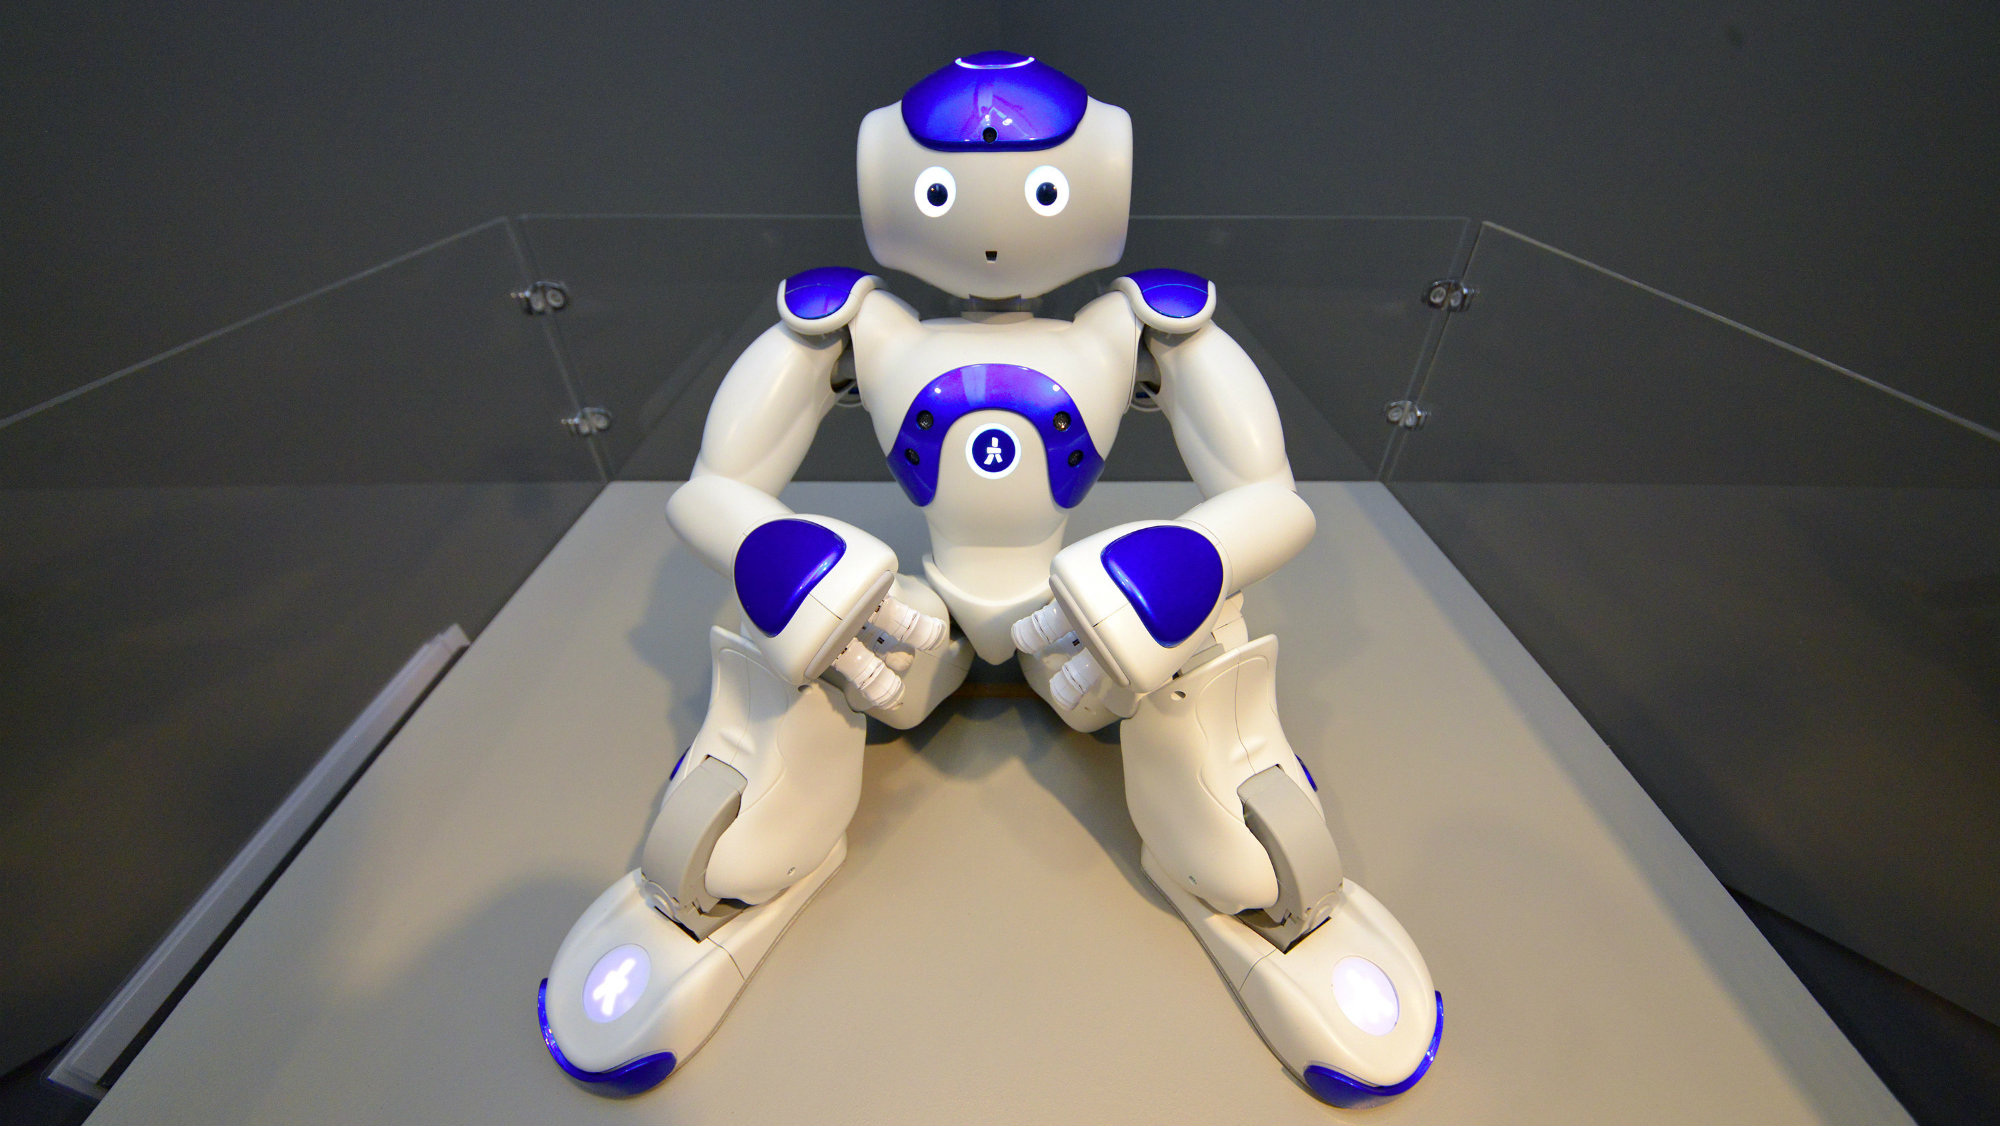 'Robot Nao V5 Evolution', a cognitive robot, is on display during the presentation of the new exhibition 'Portrait Robot' at the Maison d'Ailleurs in Yverdon, Switzerland